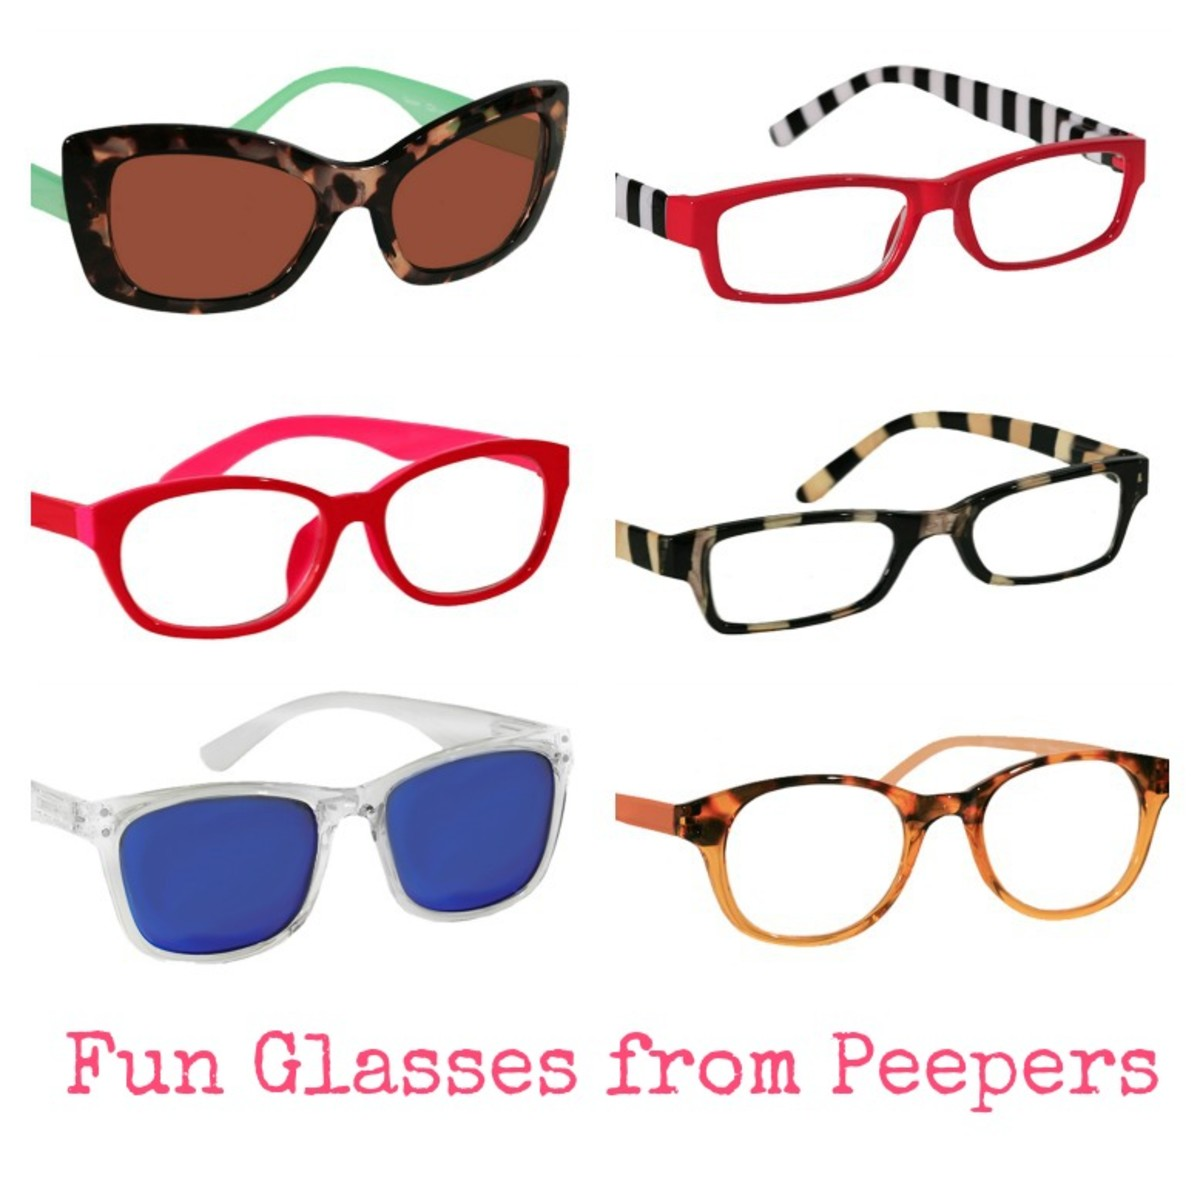 Glasses from Peppers